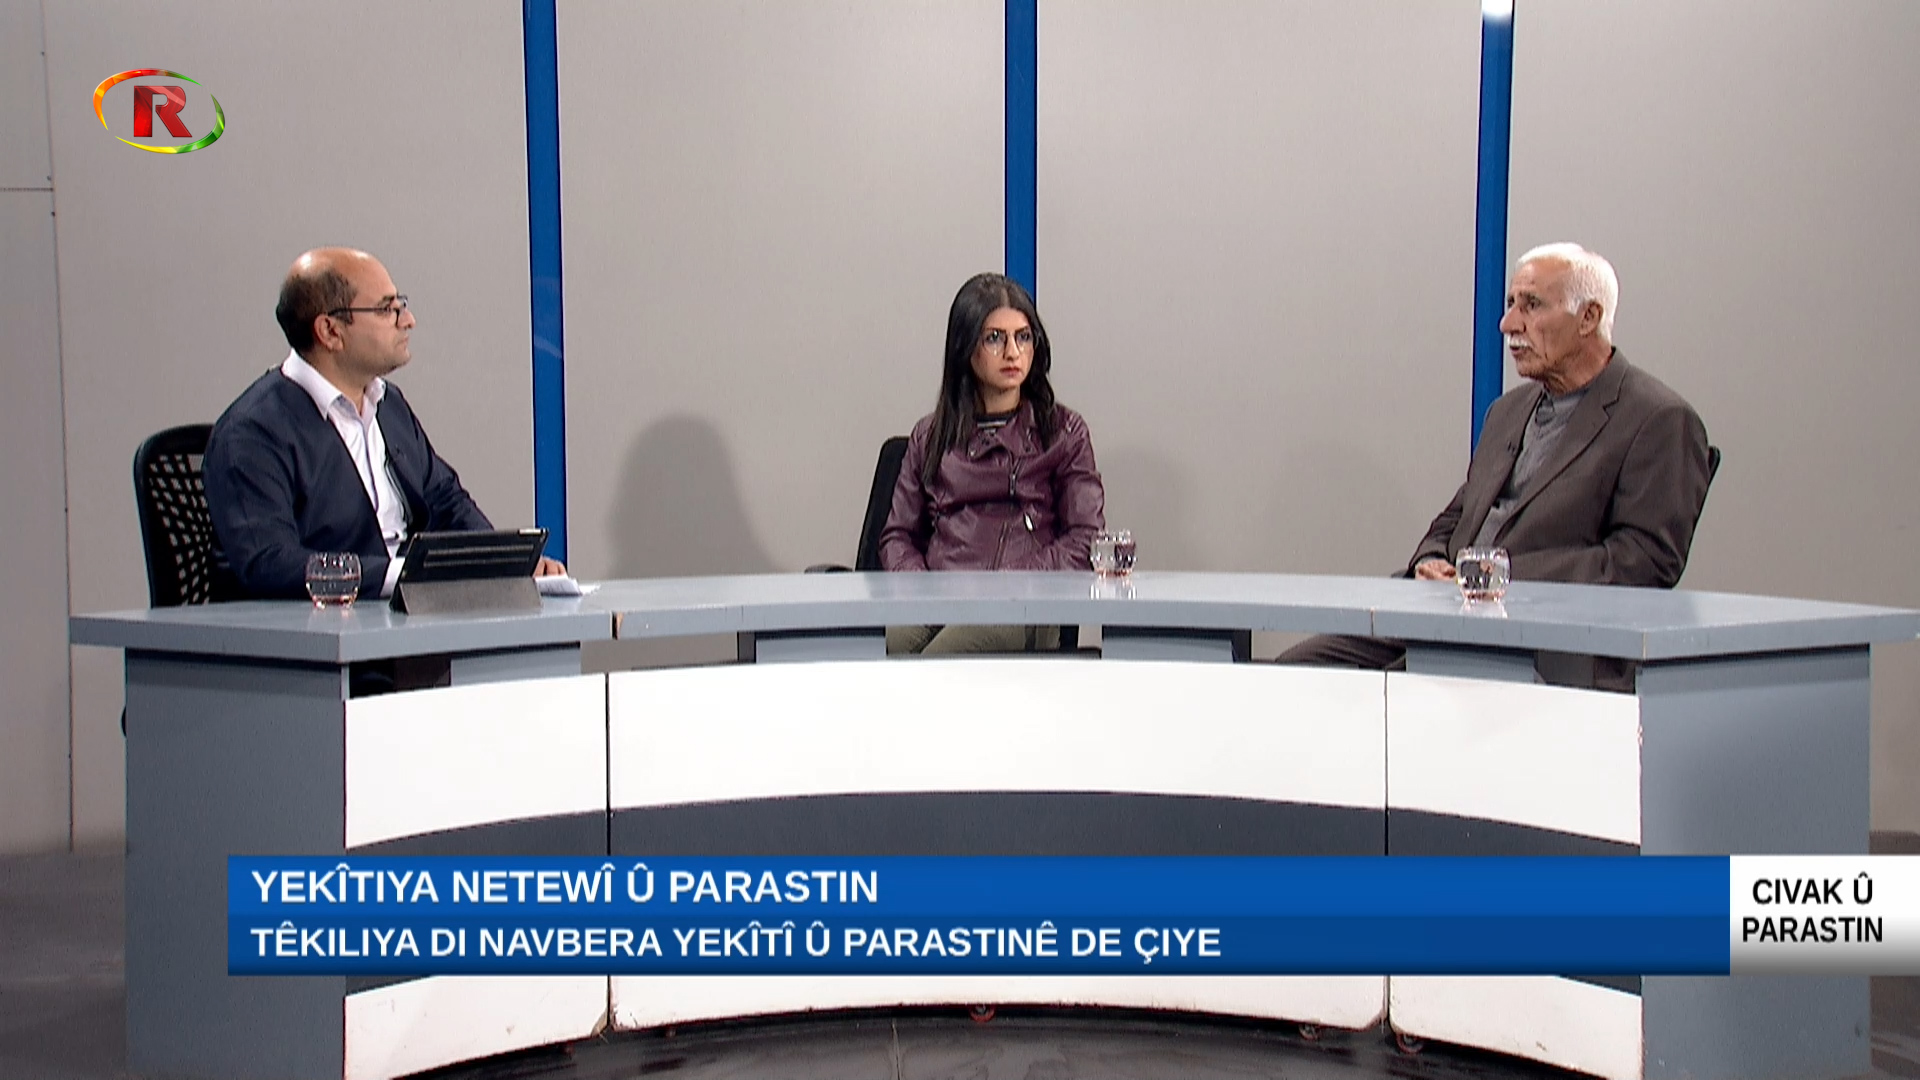 Photo of Ronahi TV – CIVAK Û PARASTIN